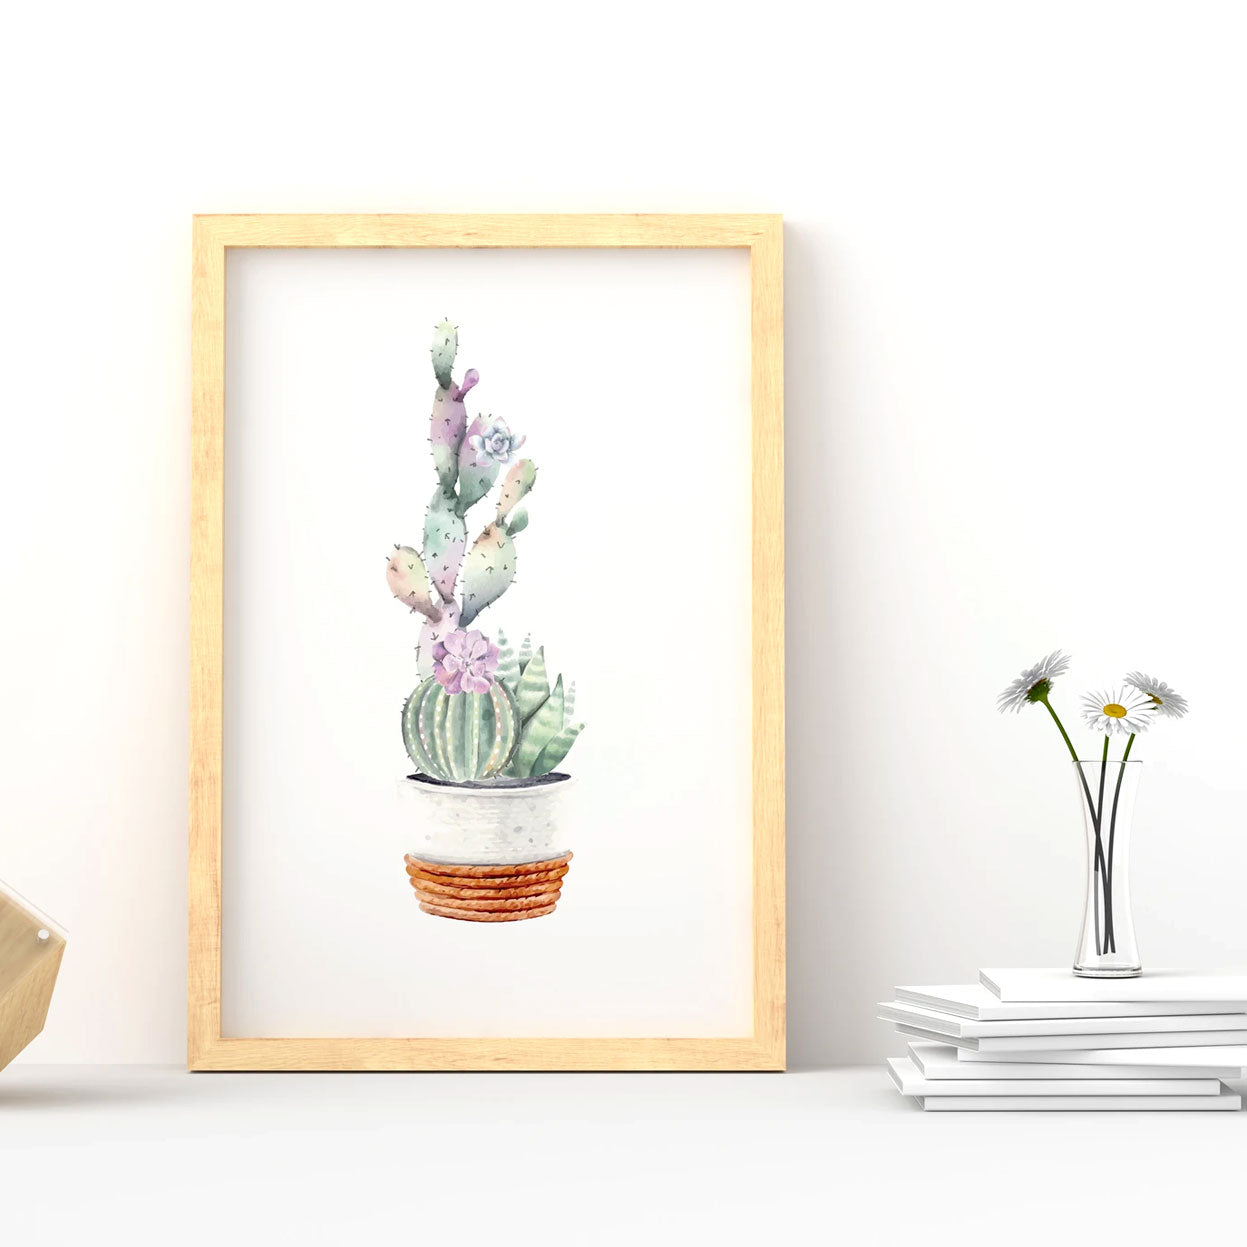 Printable Watercolor Cactus Posters for sale, Succulent Wall Art, Succulent Gift Ideas, Cactus Gifts for sale, Cactus Print Set